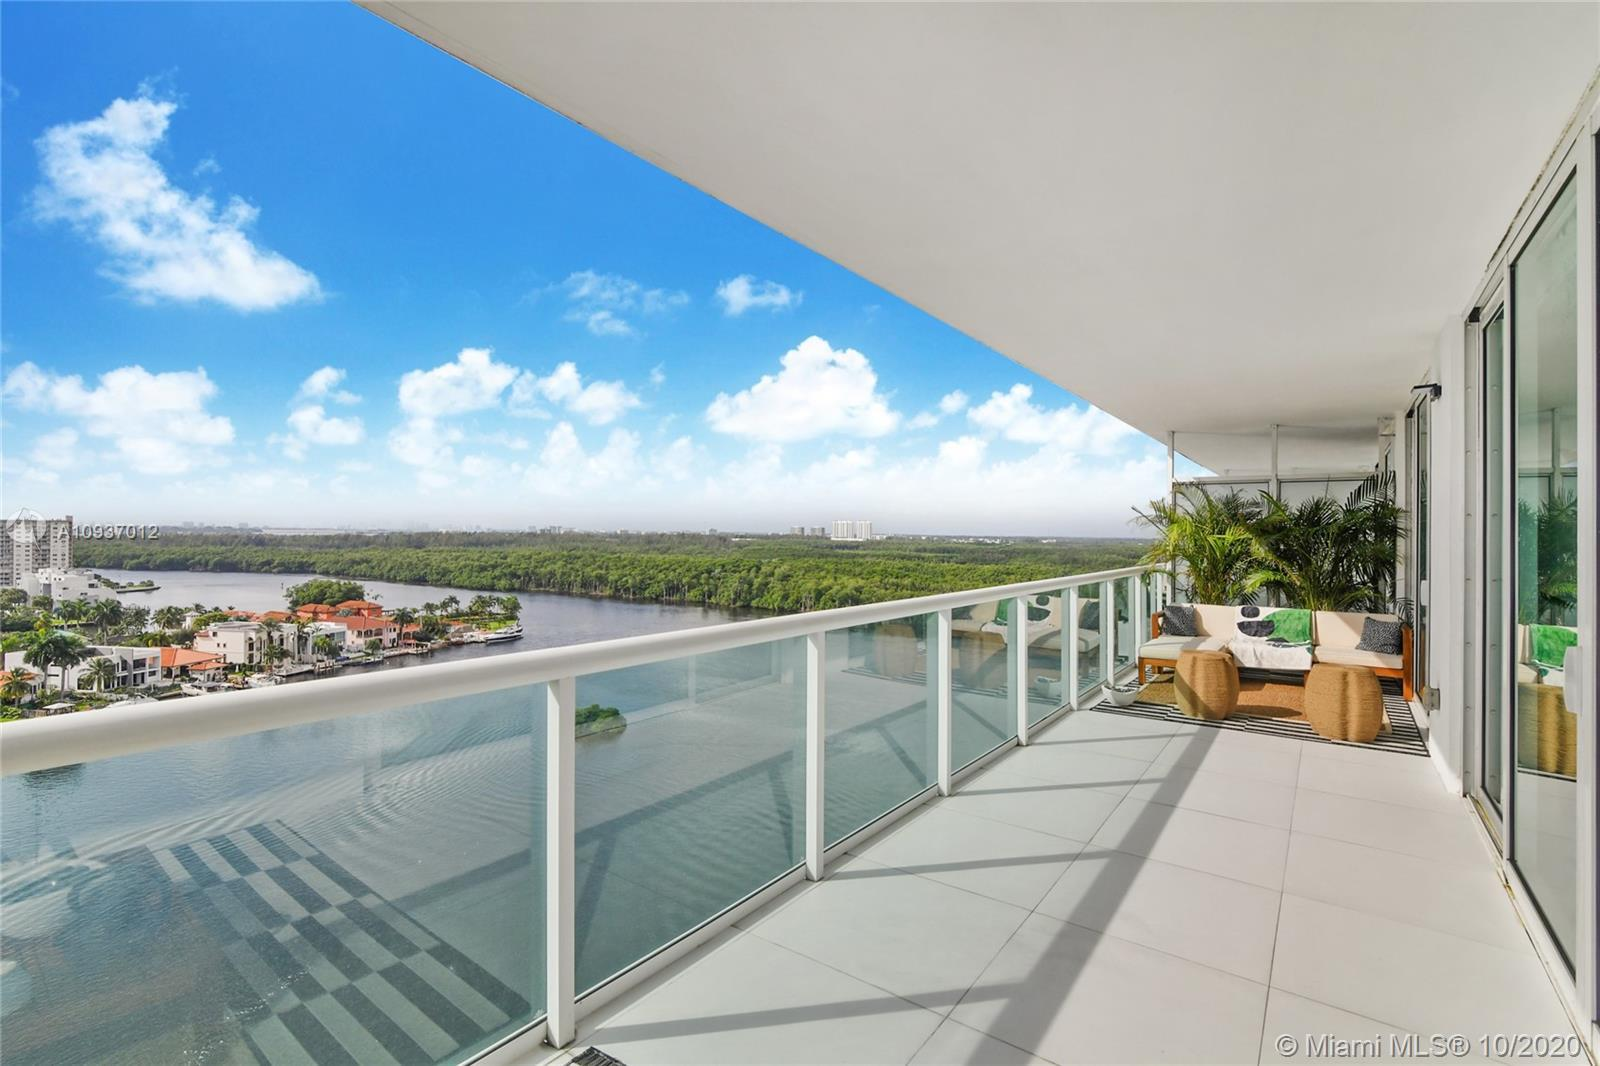 Amazing 2 beds + DEN (can be convert into 3rd bedroom) + 3 FULL Baths! Breathtaking Intercoastal and